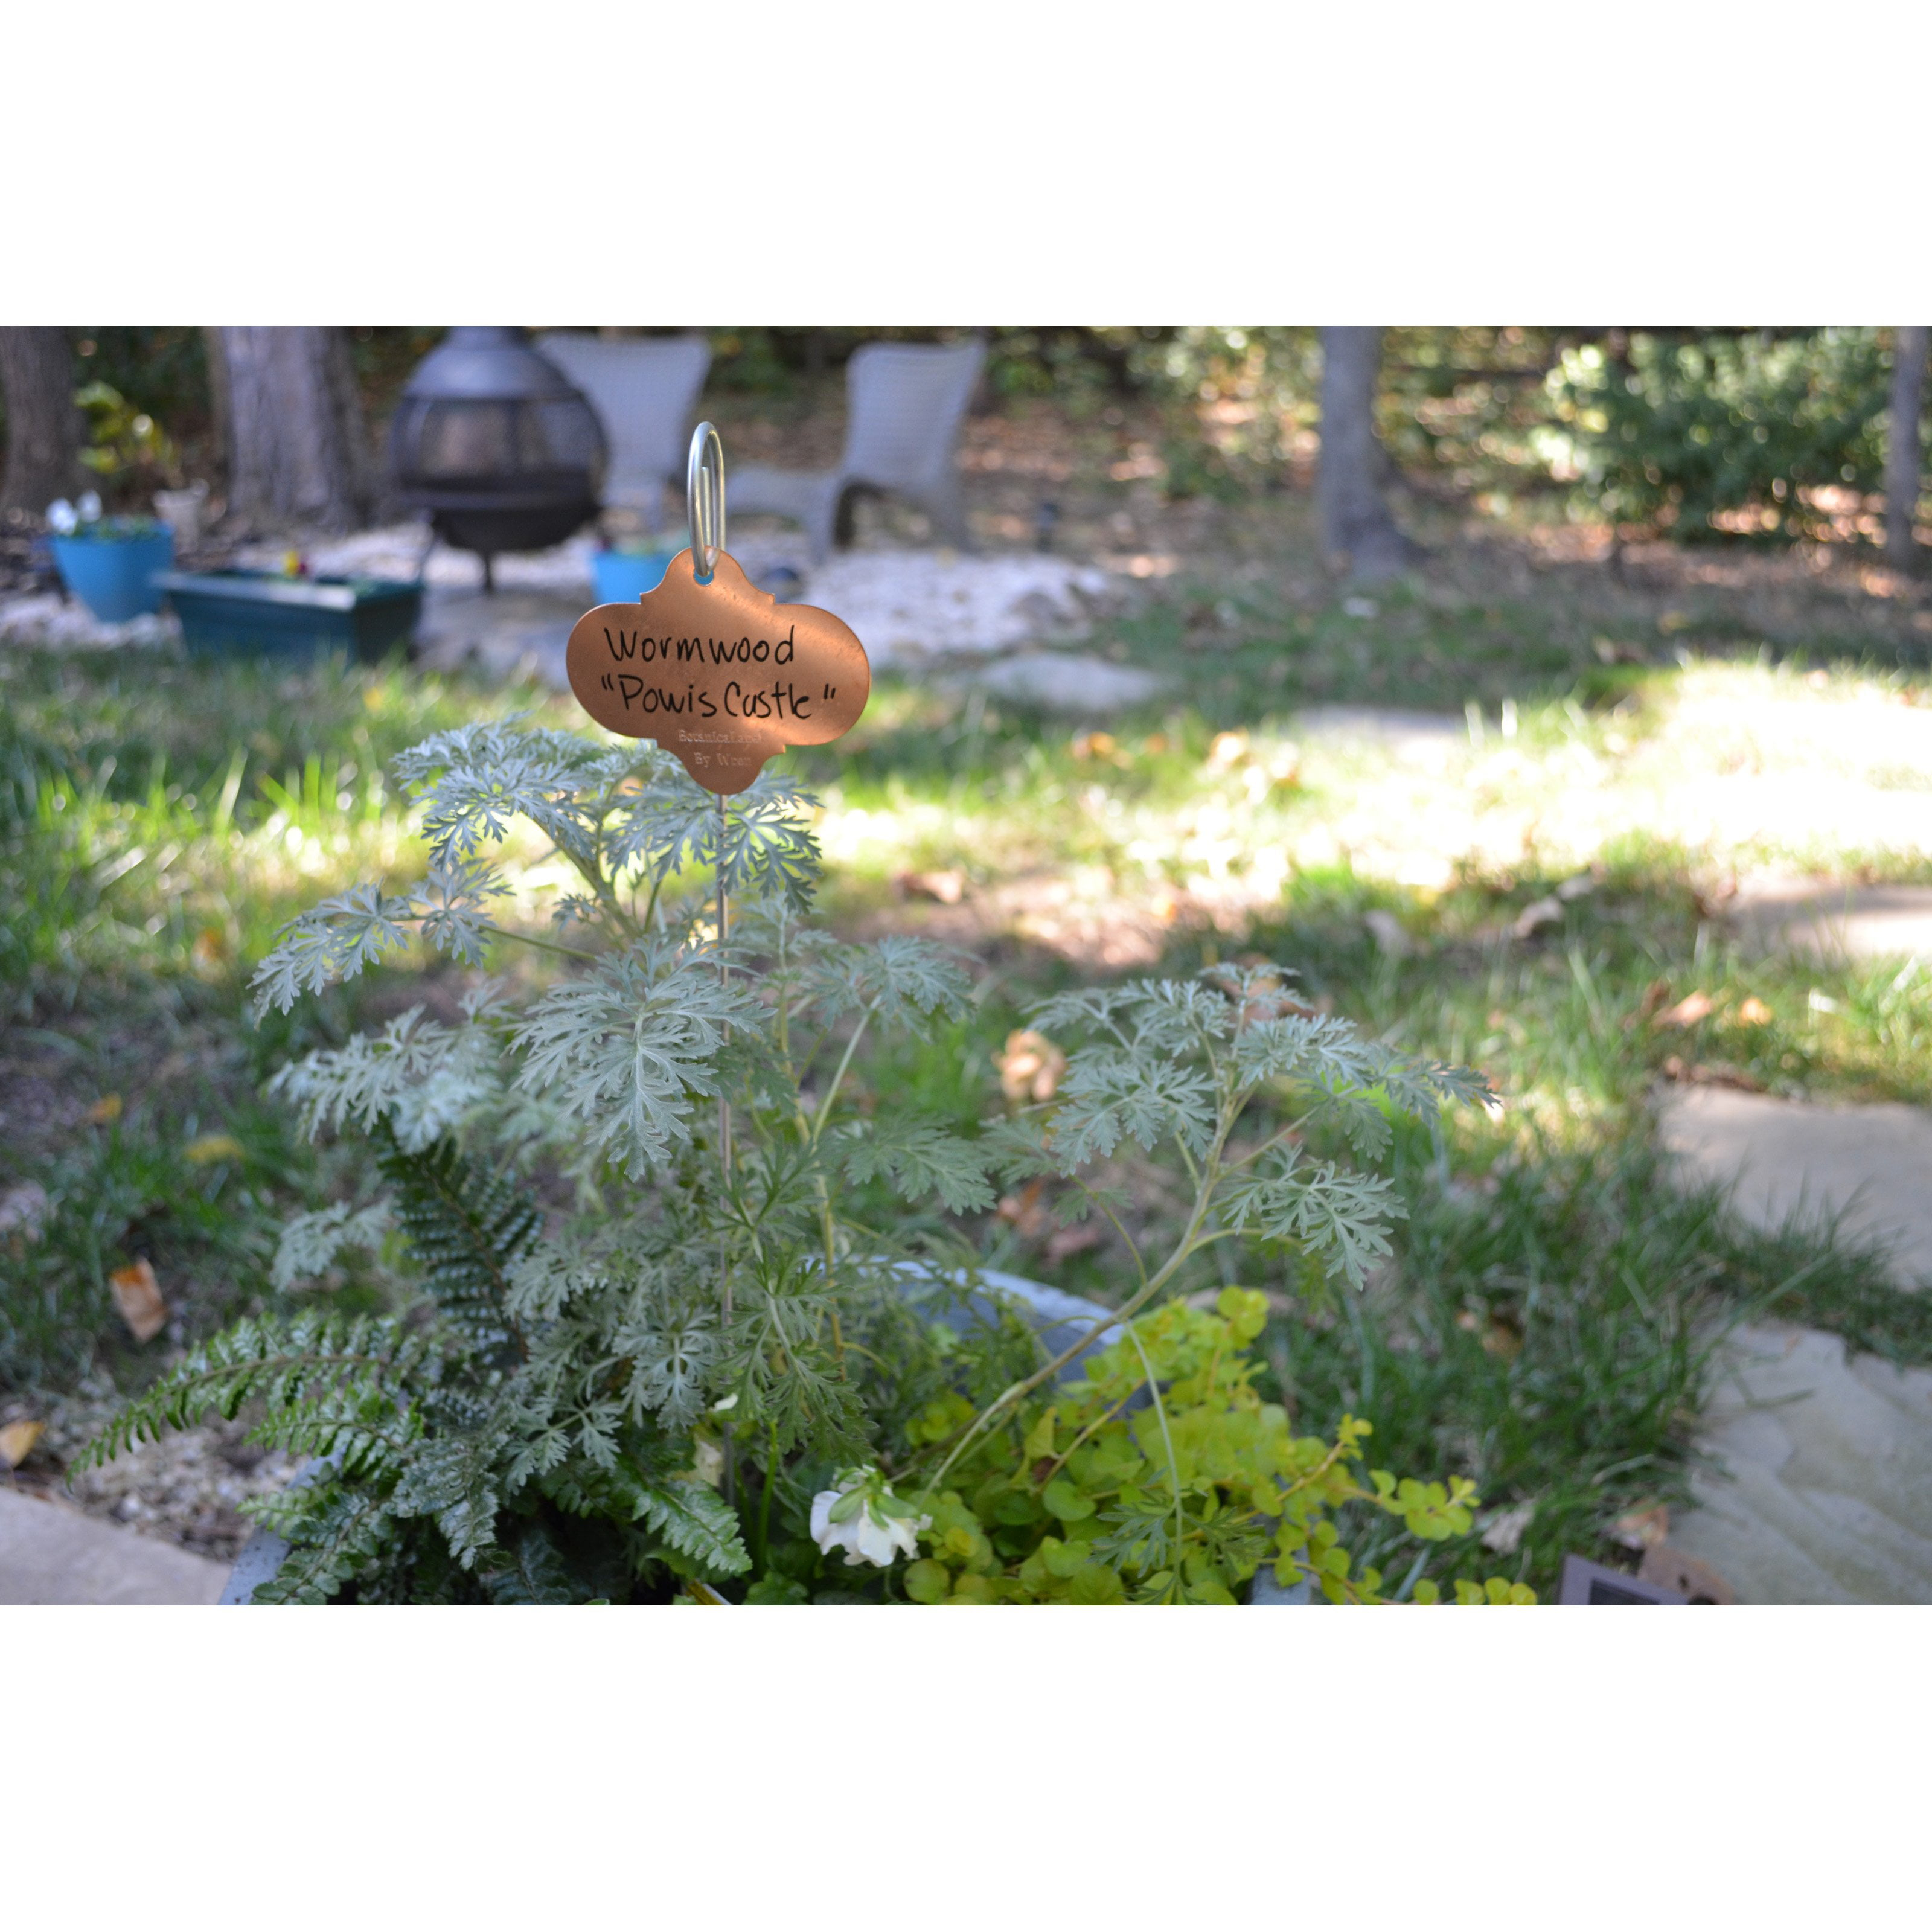 Bosmere 18 in. Garden Stakes with Copper Tags Pack of 50 by Bosmere